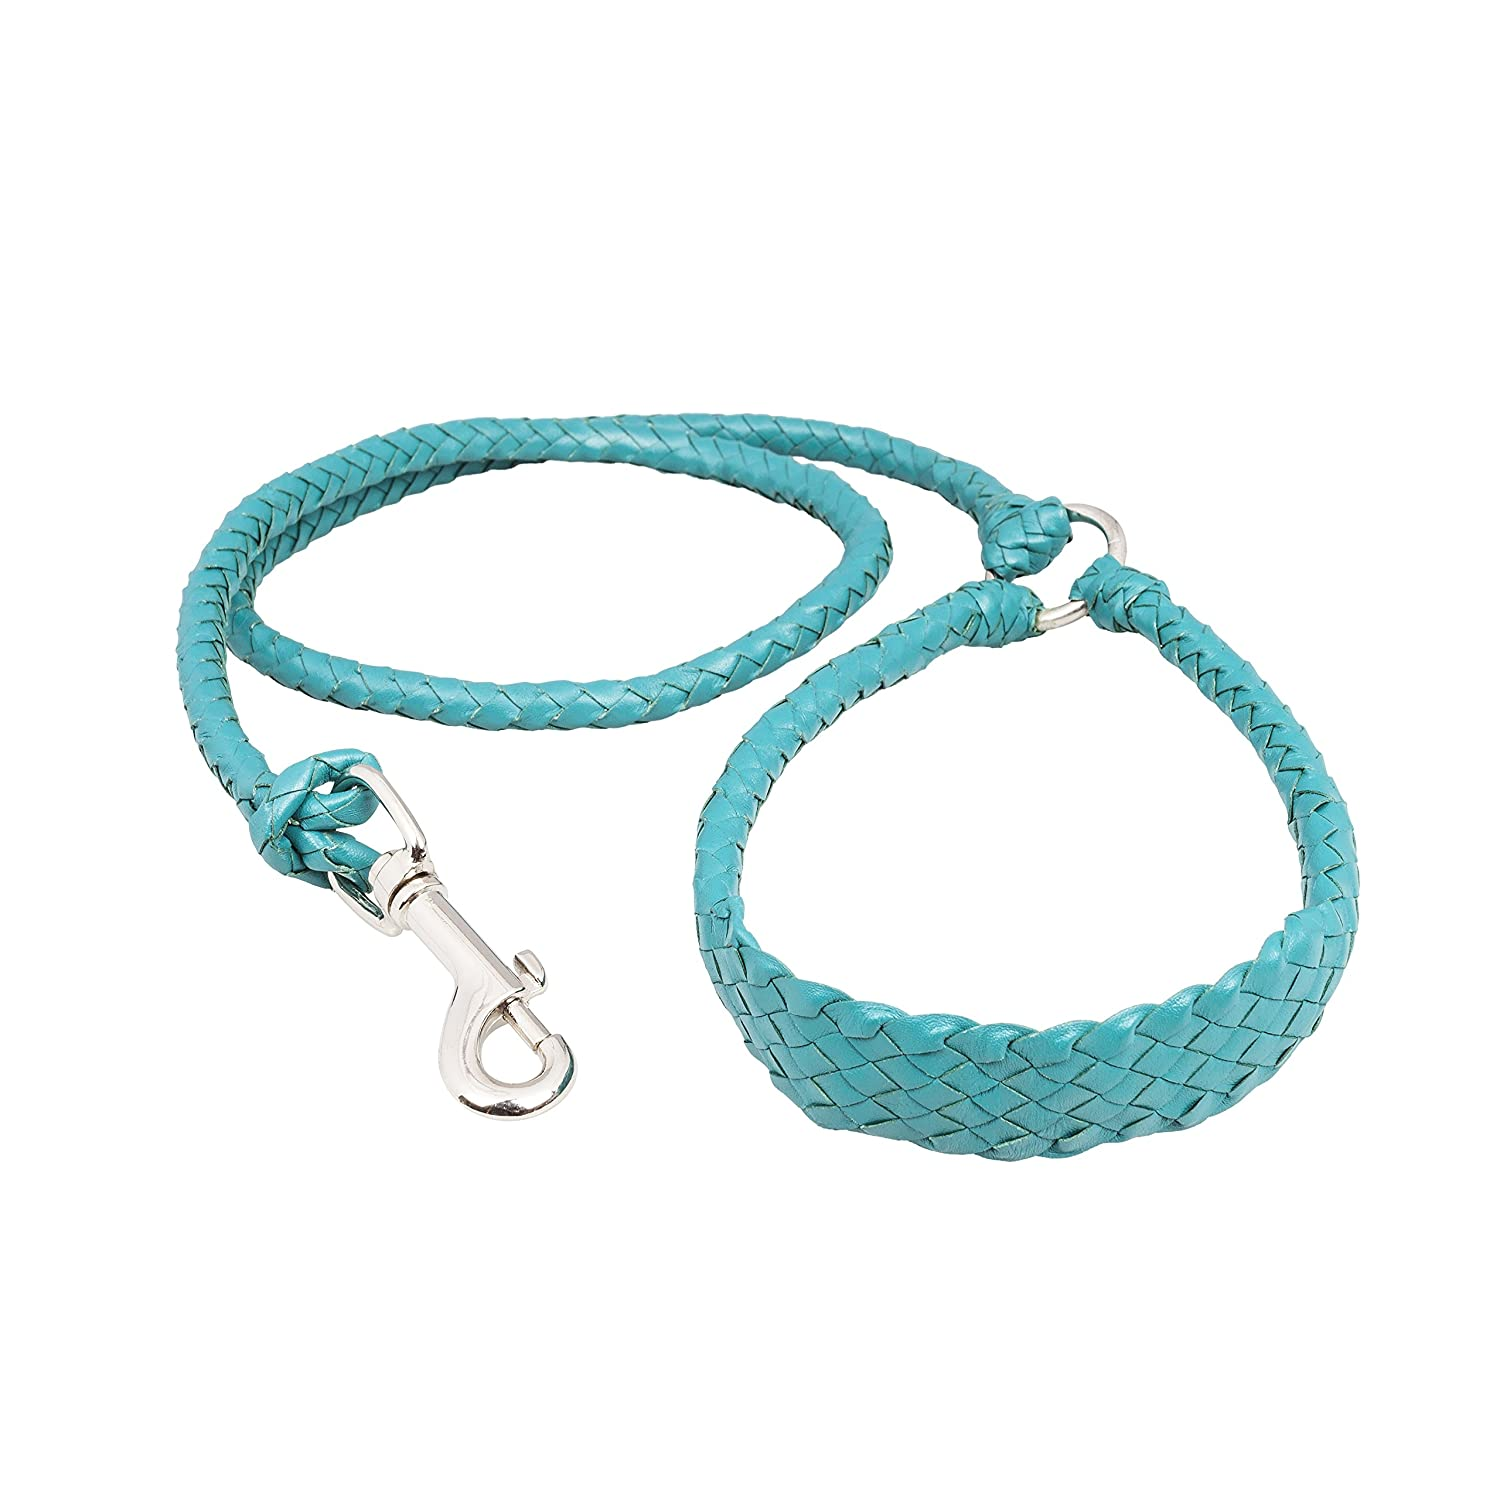 Teal 35\ Teal 35\ Braided Leather Dog Leash Kangaroo Leather Soft Light Strong (35    90cm, Teal)